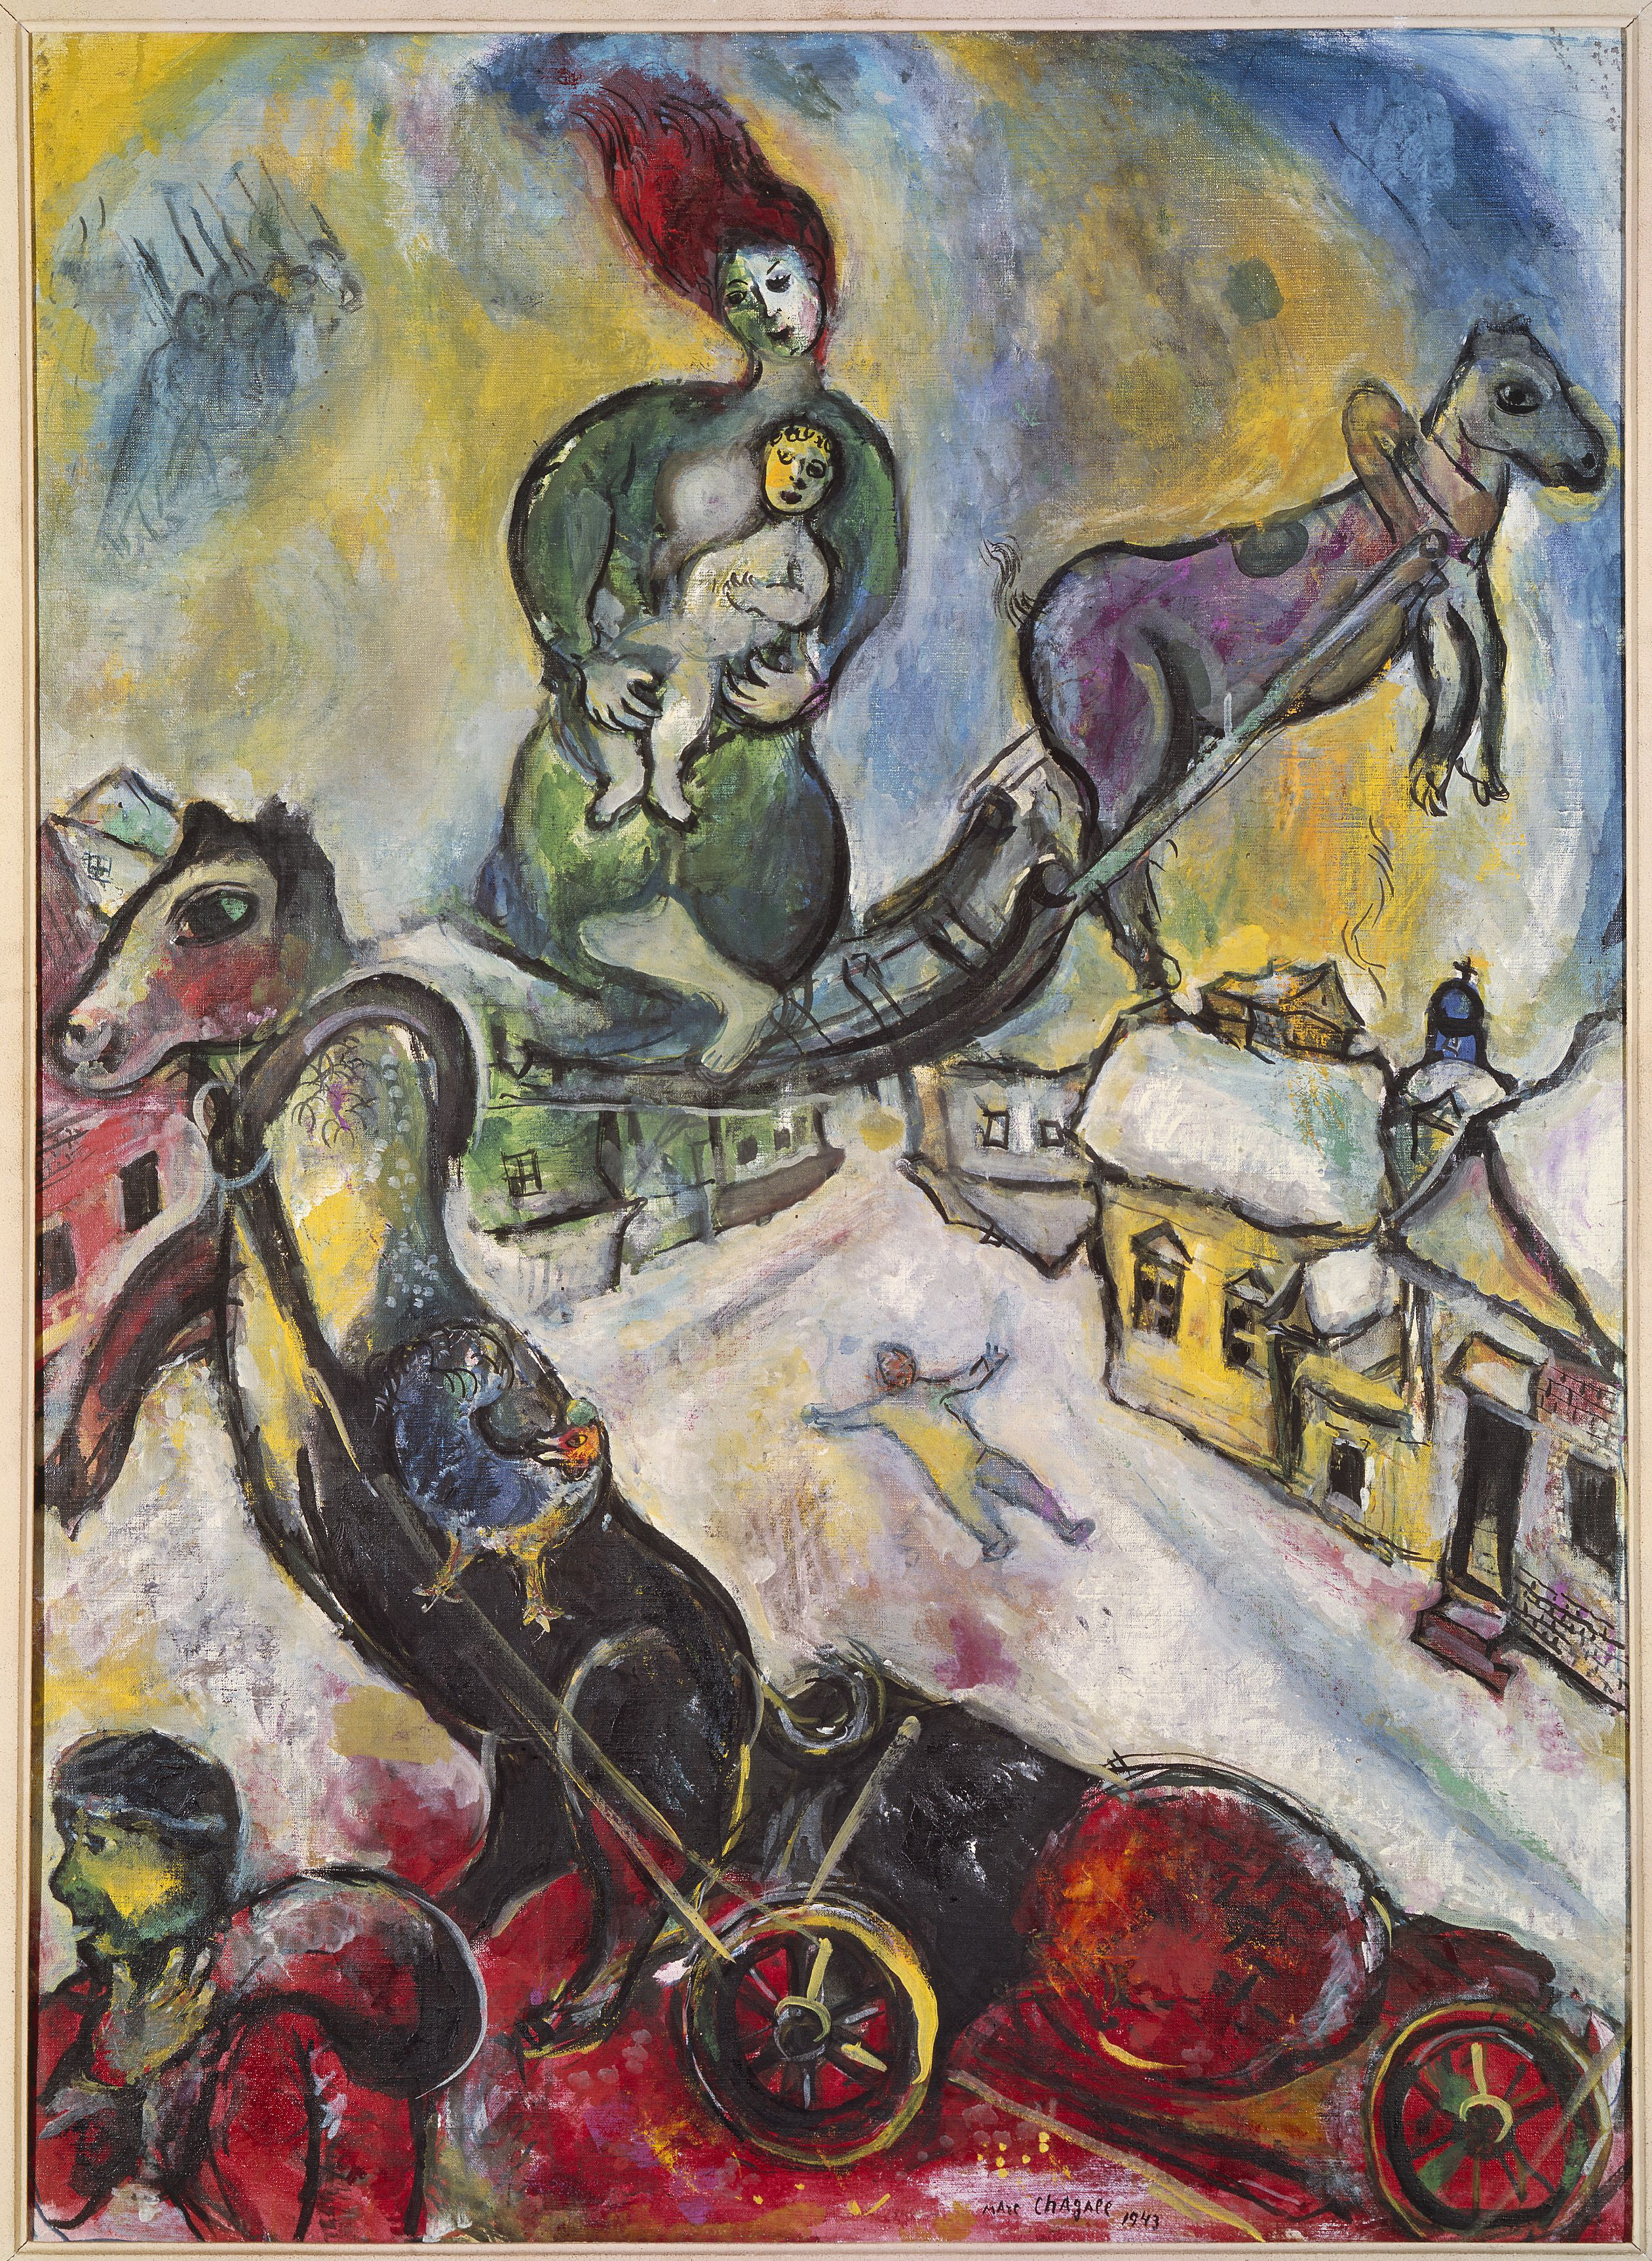 Marc Chagall, The War, 1943, oil on canvas, 41 2/3 x 29 7/8 in. Musée National…